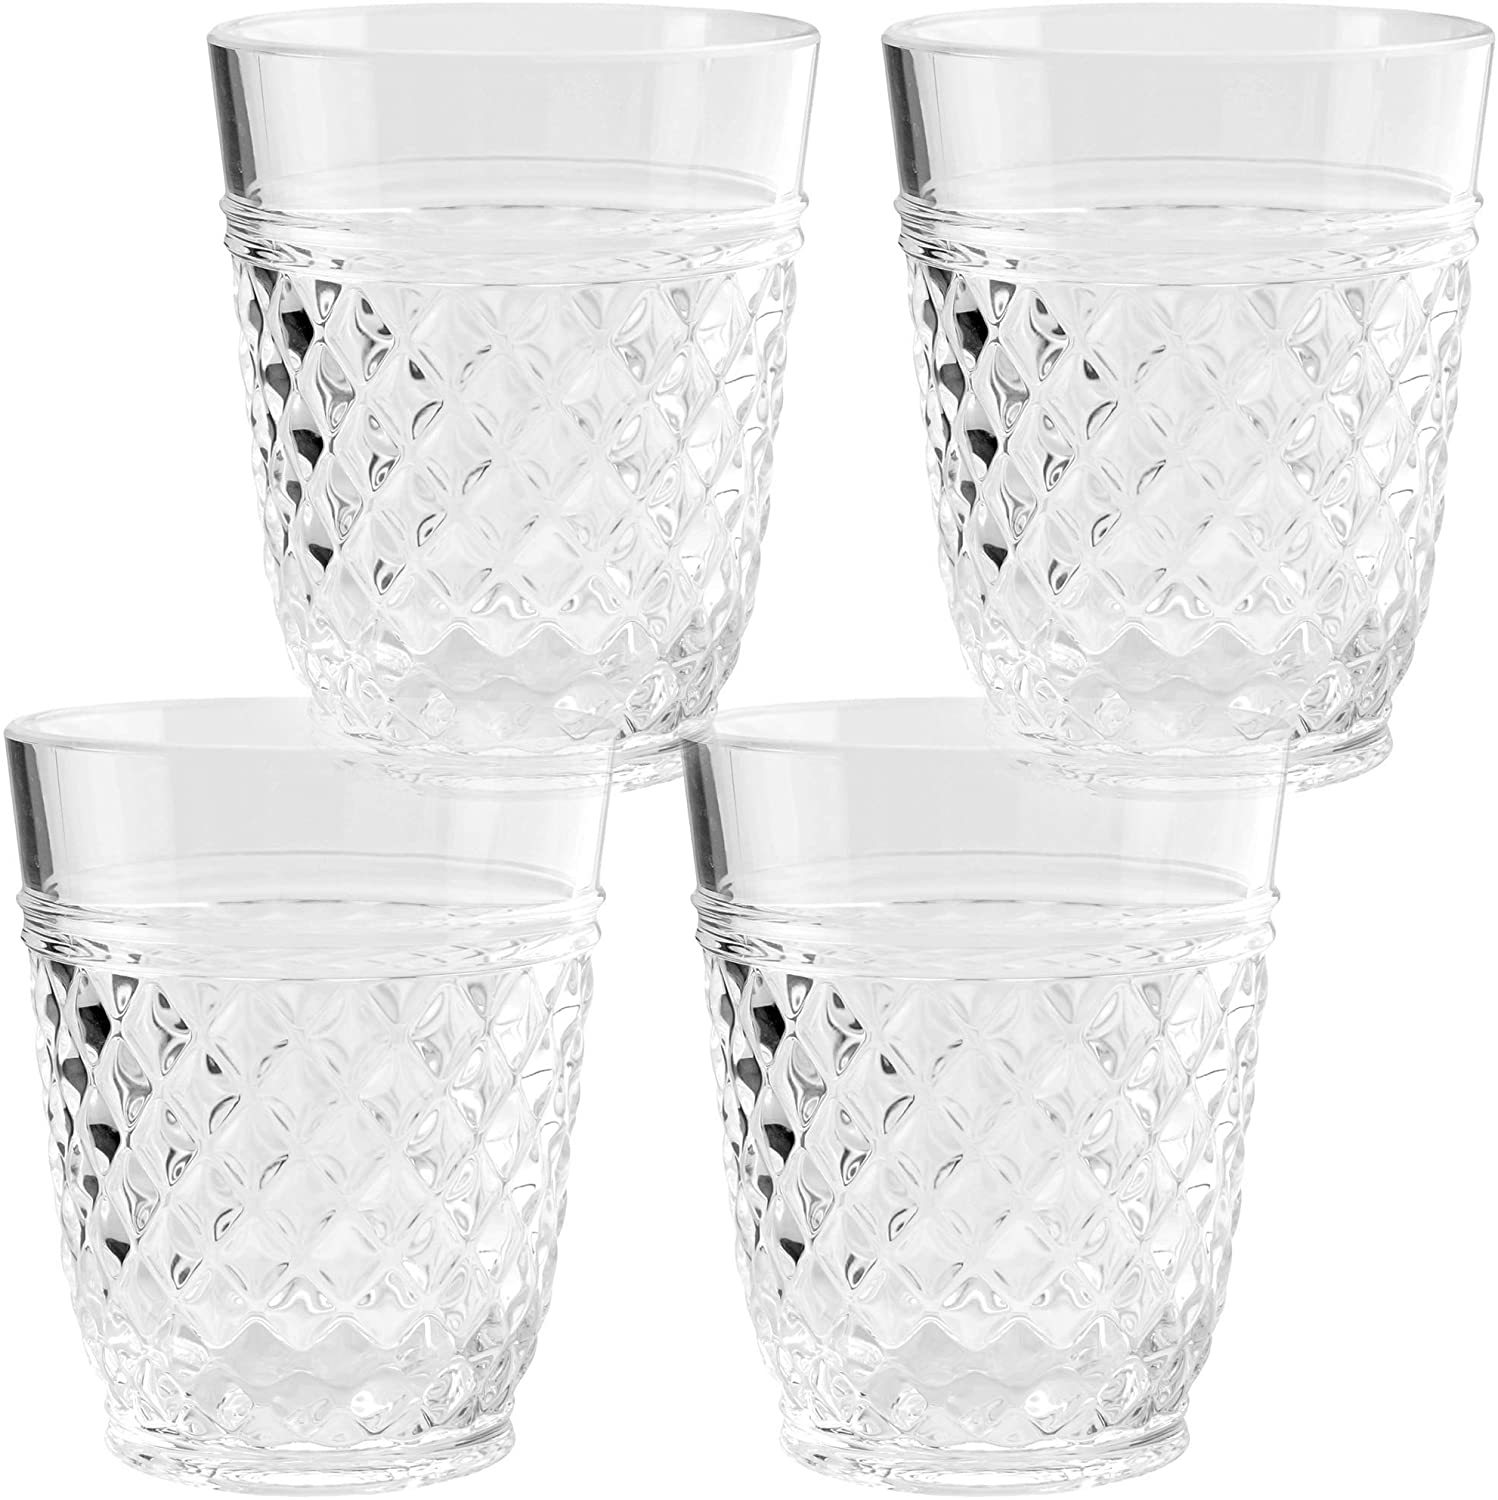 PG Drinkware Collection-Premium Quality 14oz Acrylic Regular dealer Clear 70% OFF Outlet Super